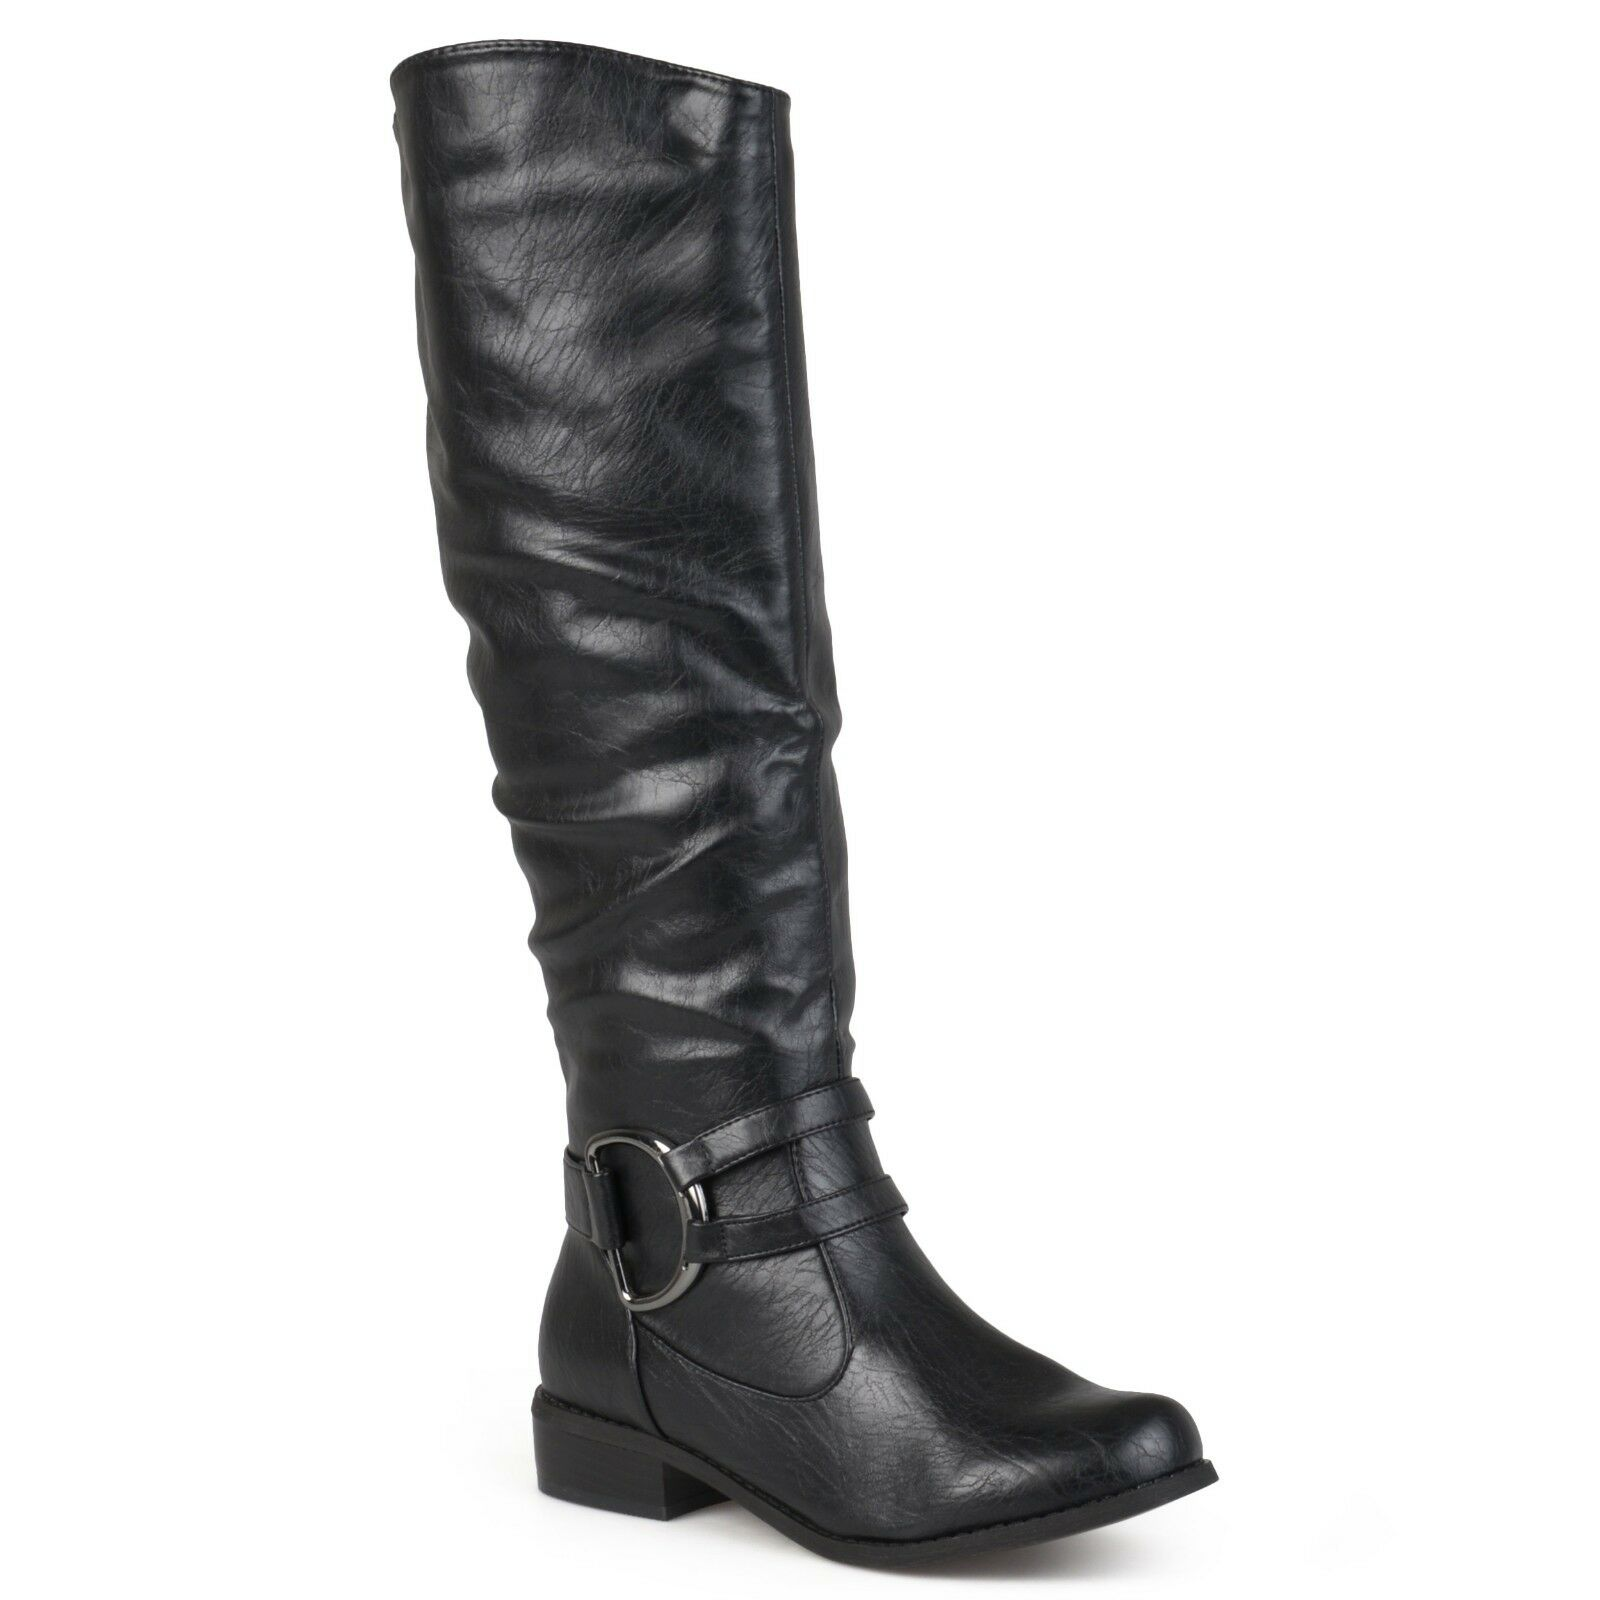 Brinley Co. Women's Black Ring Accent Tall Motorcycle Boots Size 9